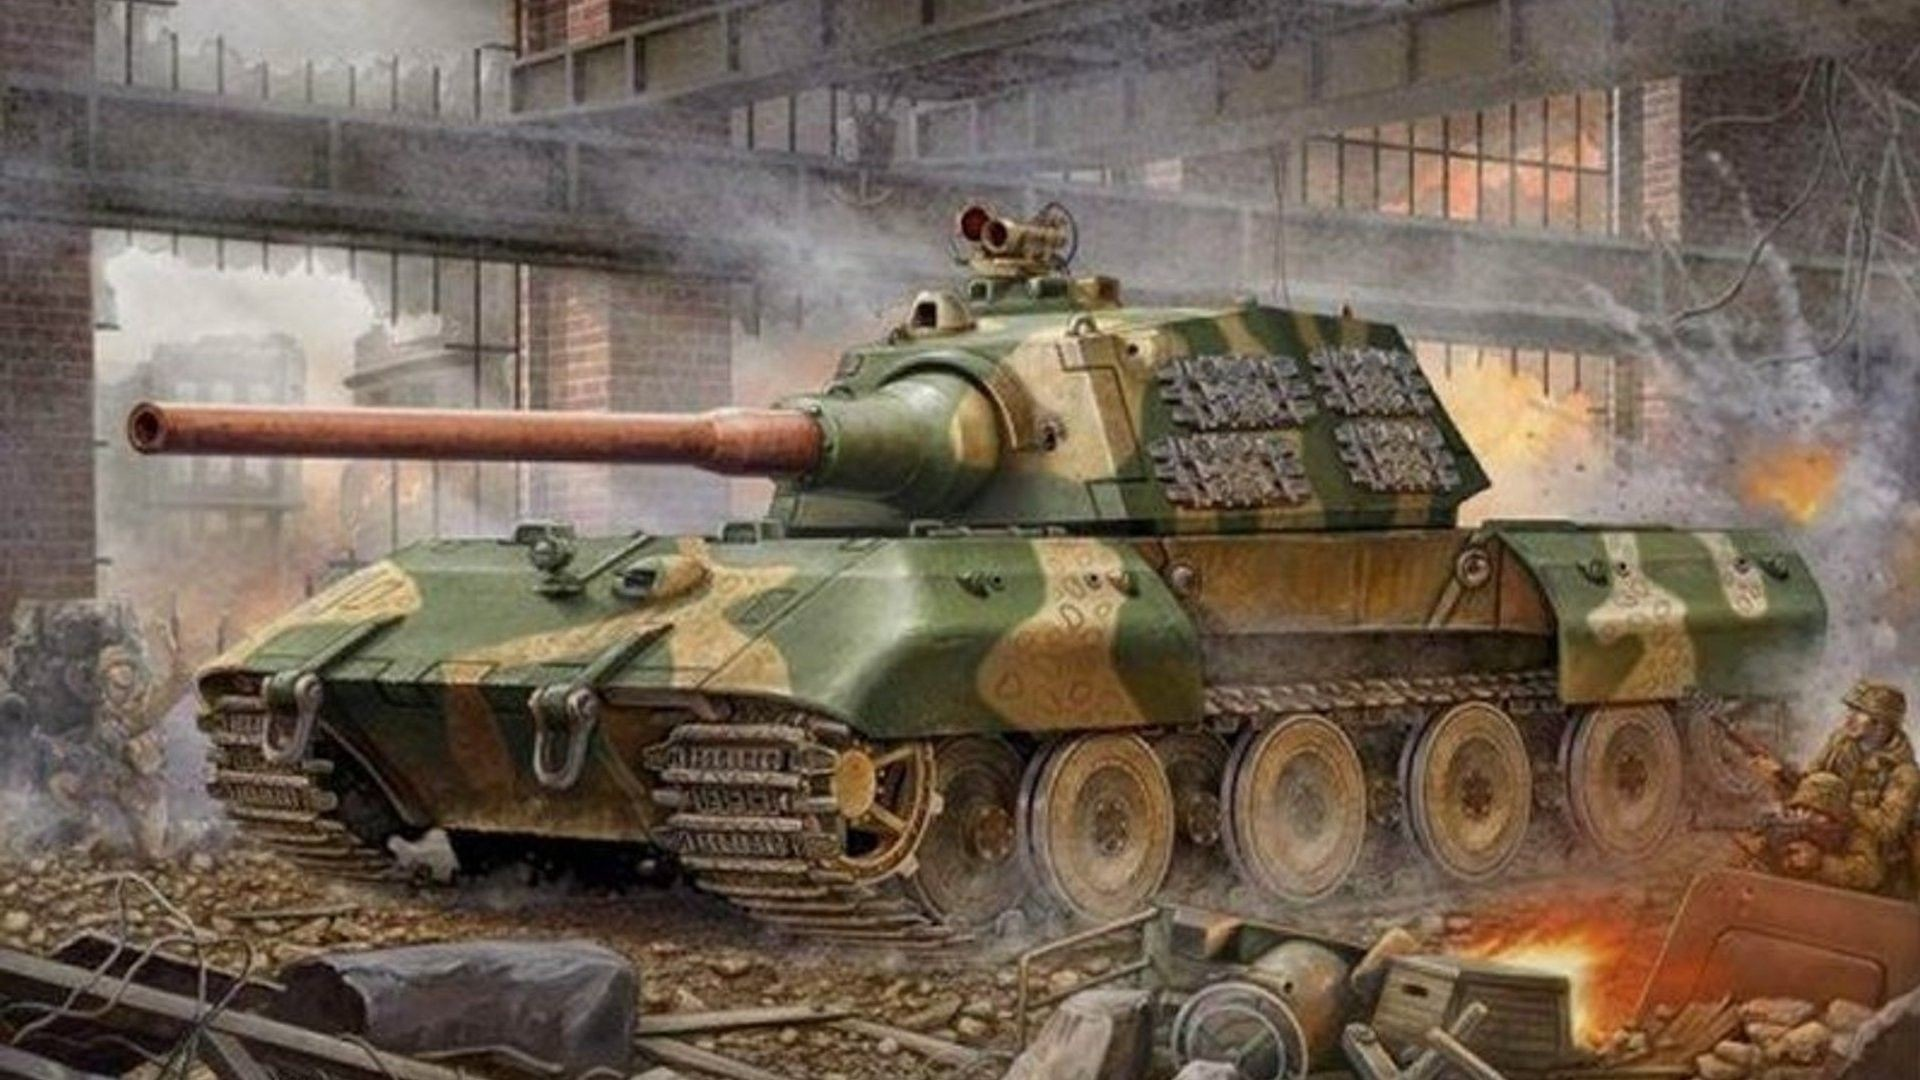 Res: 1920x1080, Nearing the end of WWII, Germany maintained the belief that super tanks  could reverse the war's outcome and help them emerge victorious.